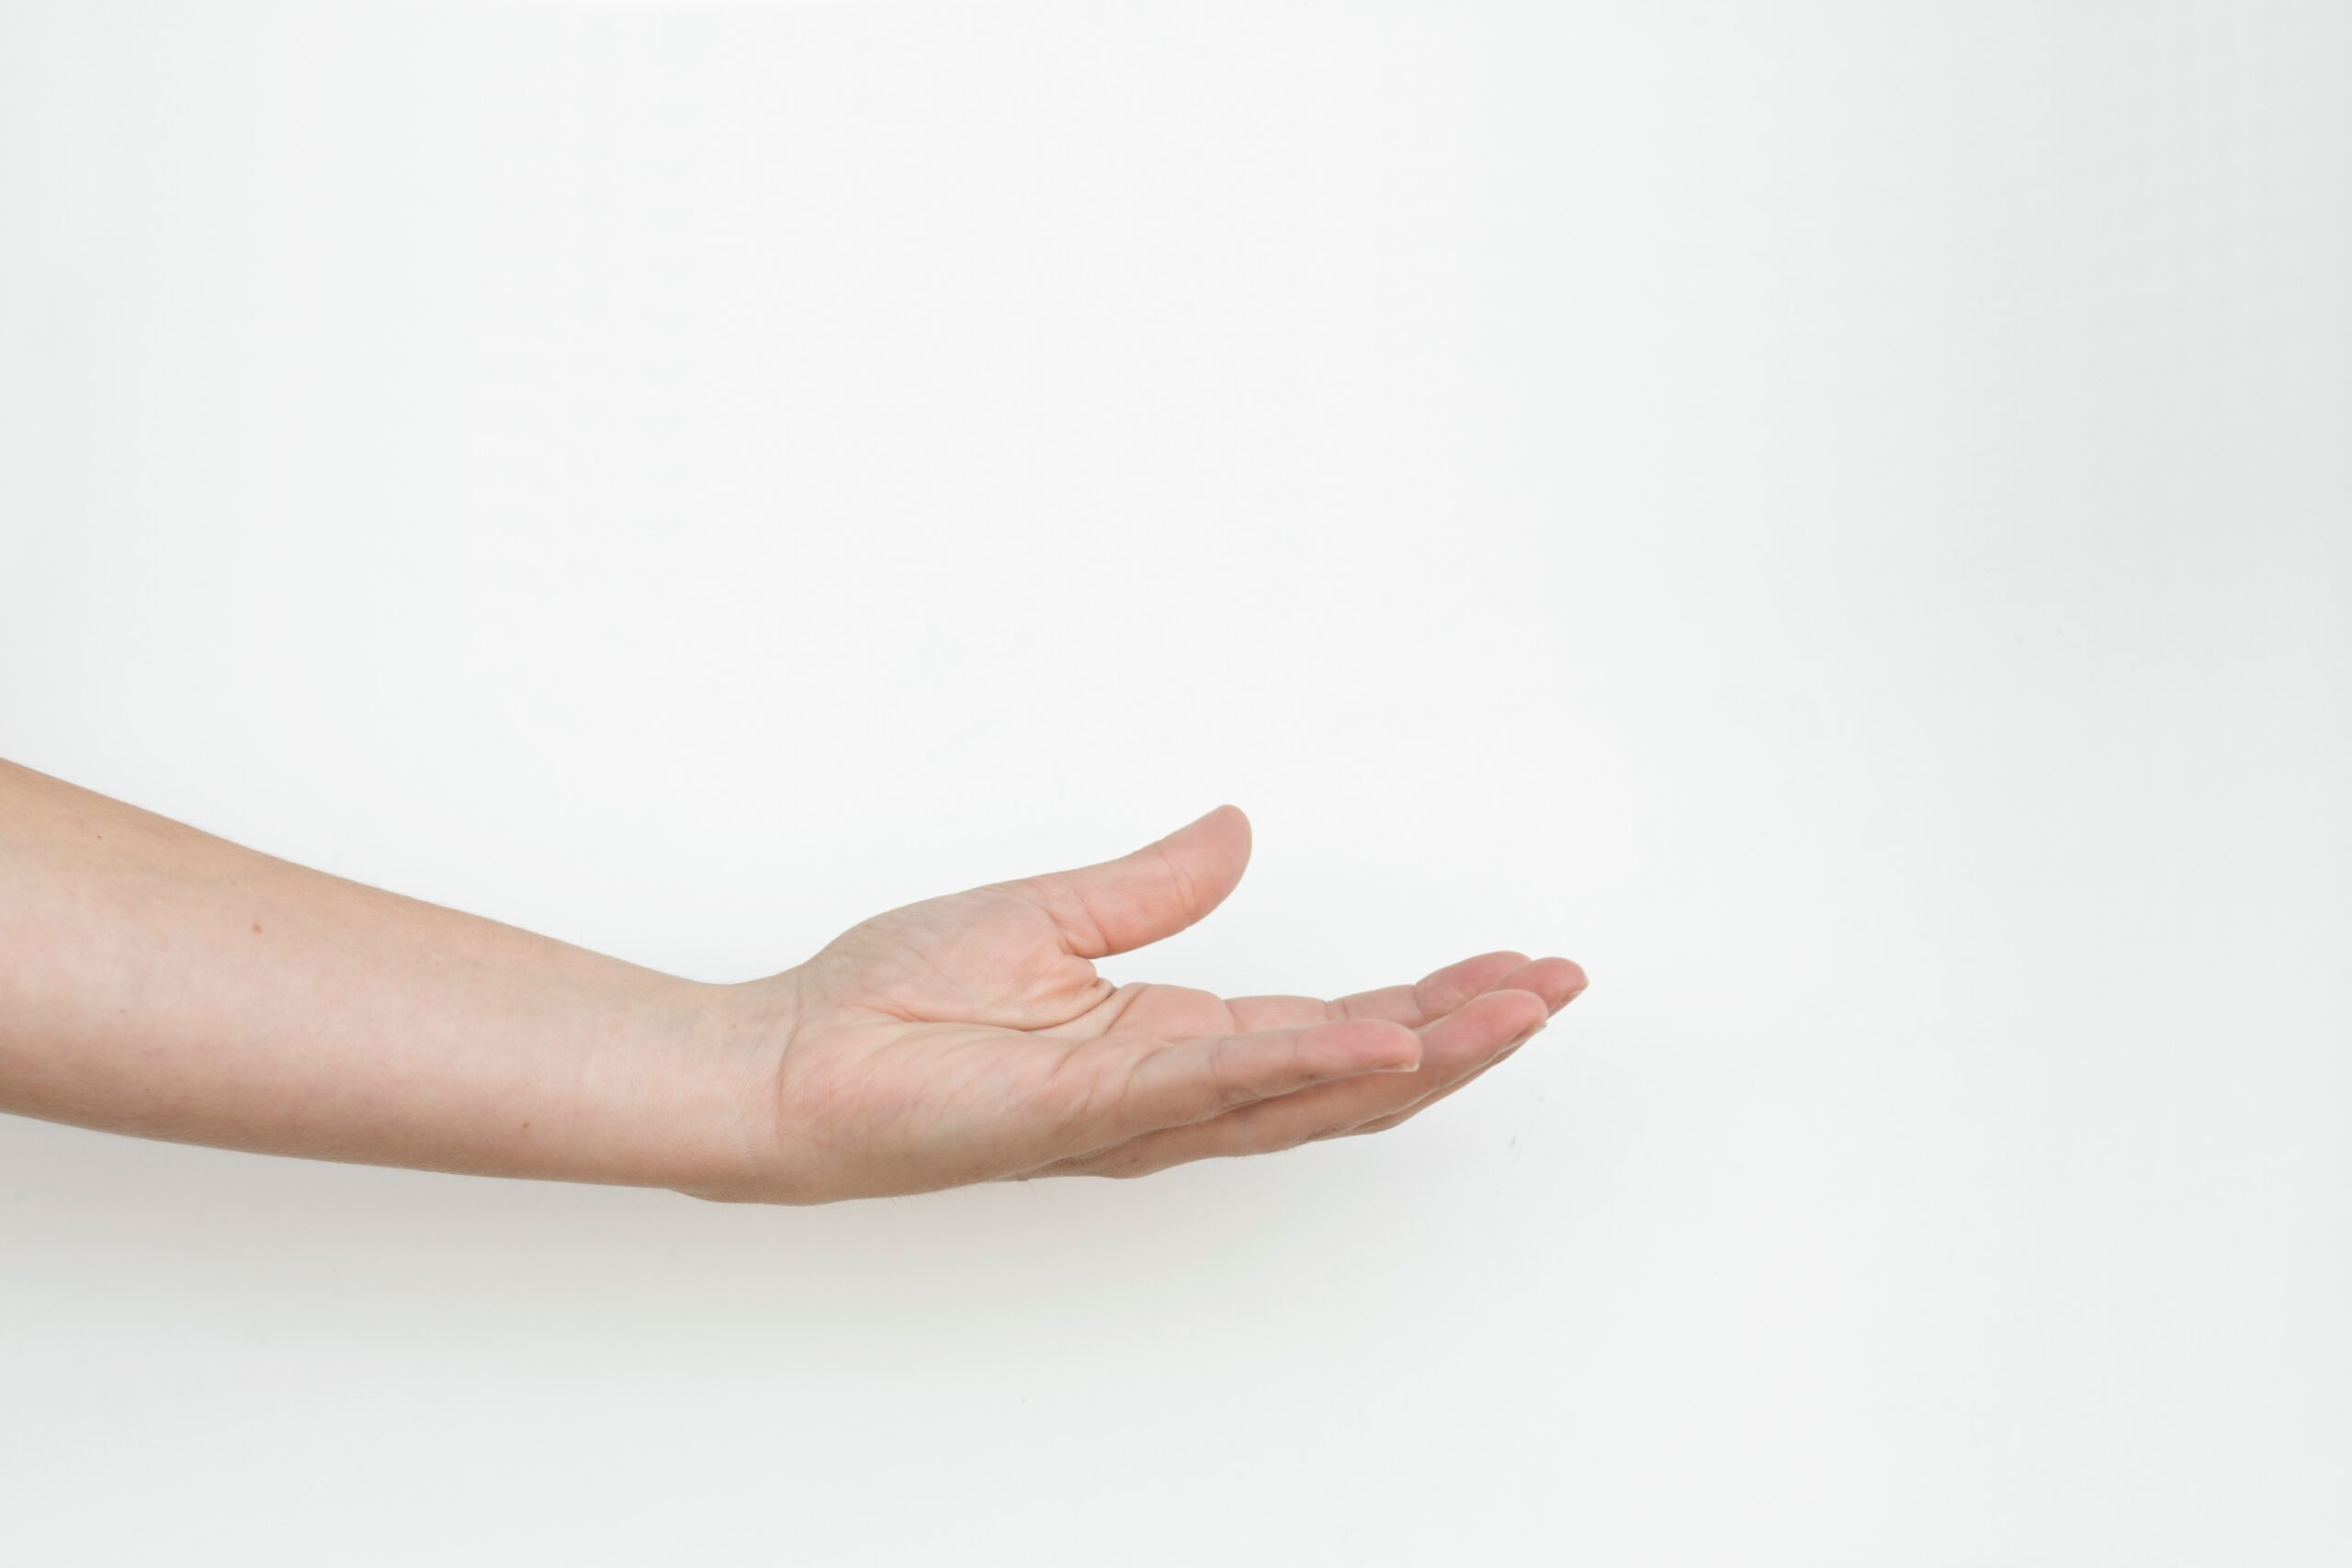 Palmistry The Facts About How-to Read Palms